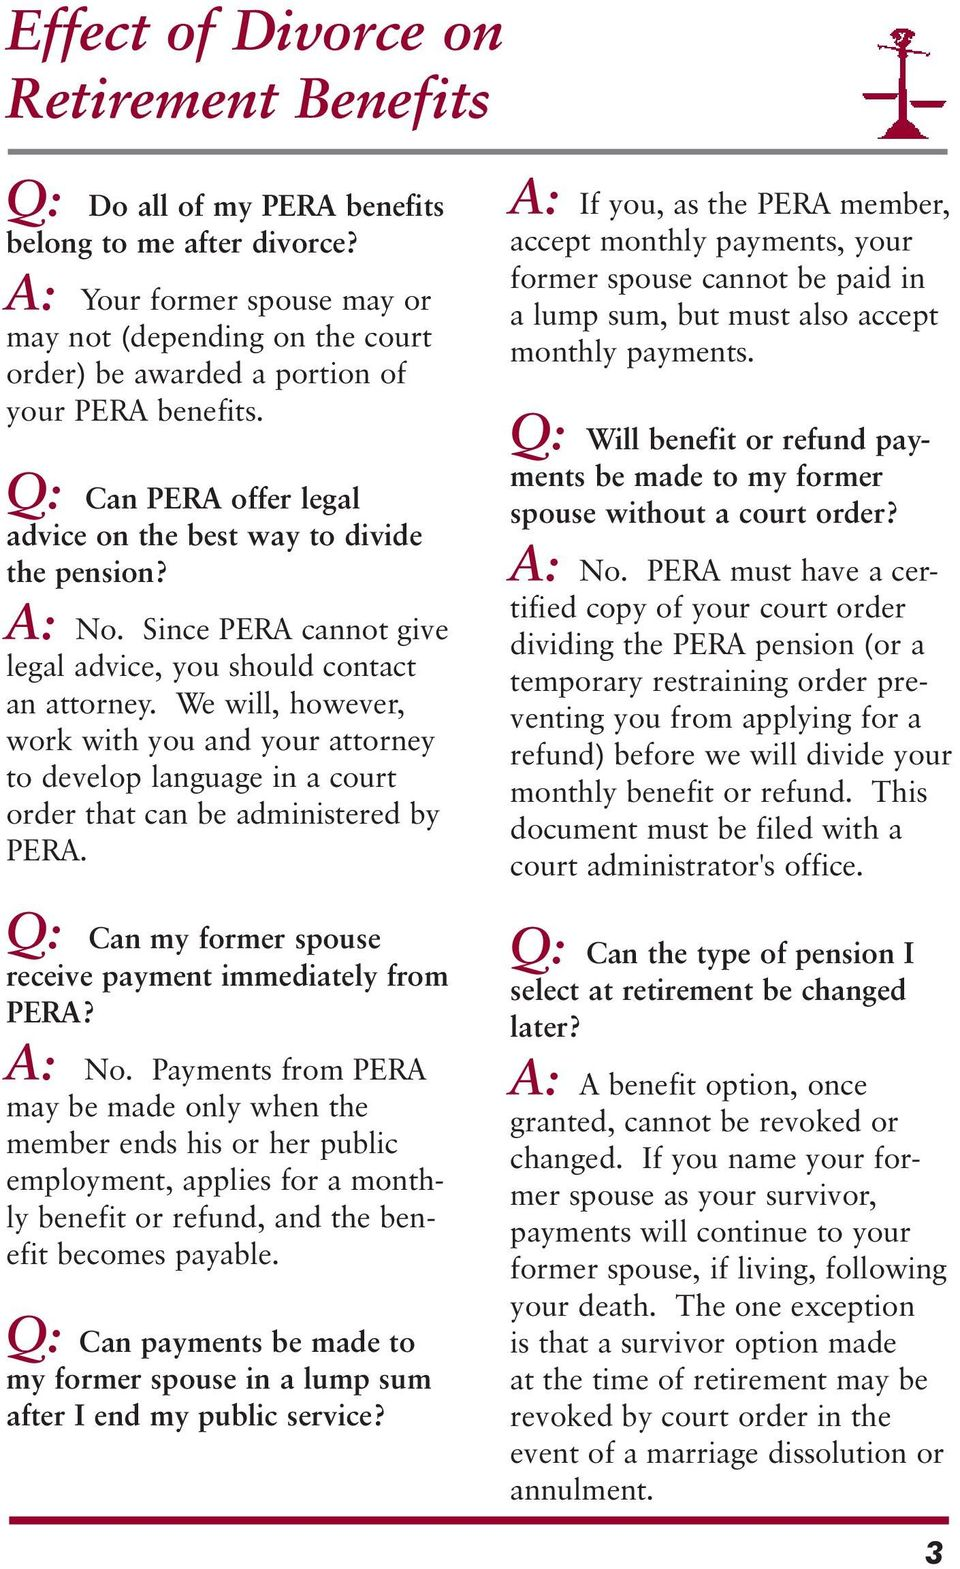 Since PERA cannot give legal advice, you should contact an attorney. We will, however, work with you and your attorney to develop language in a court order that can be administered by PERA.